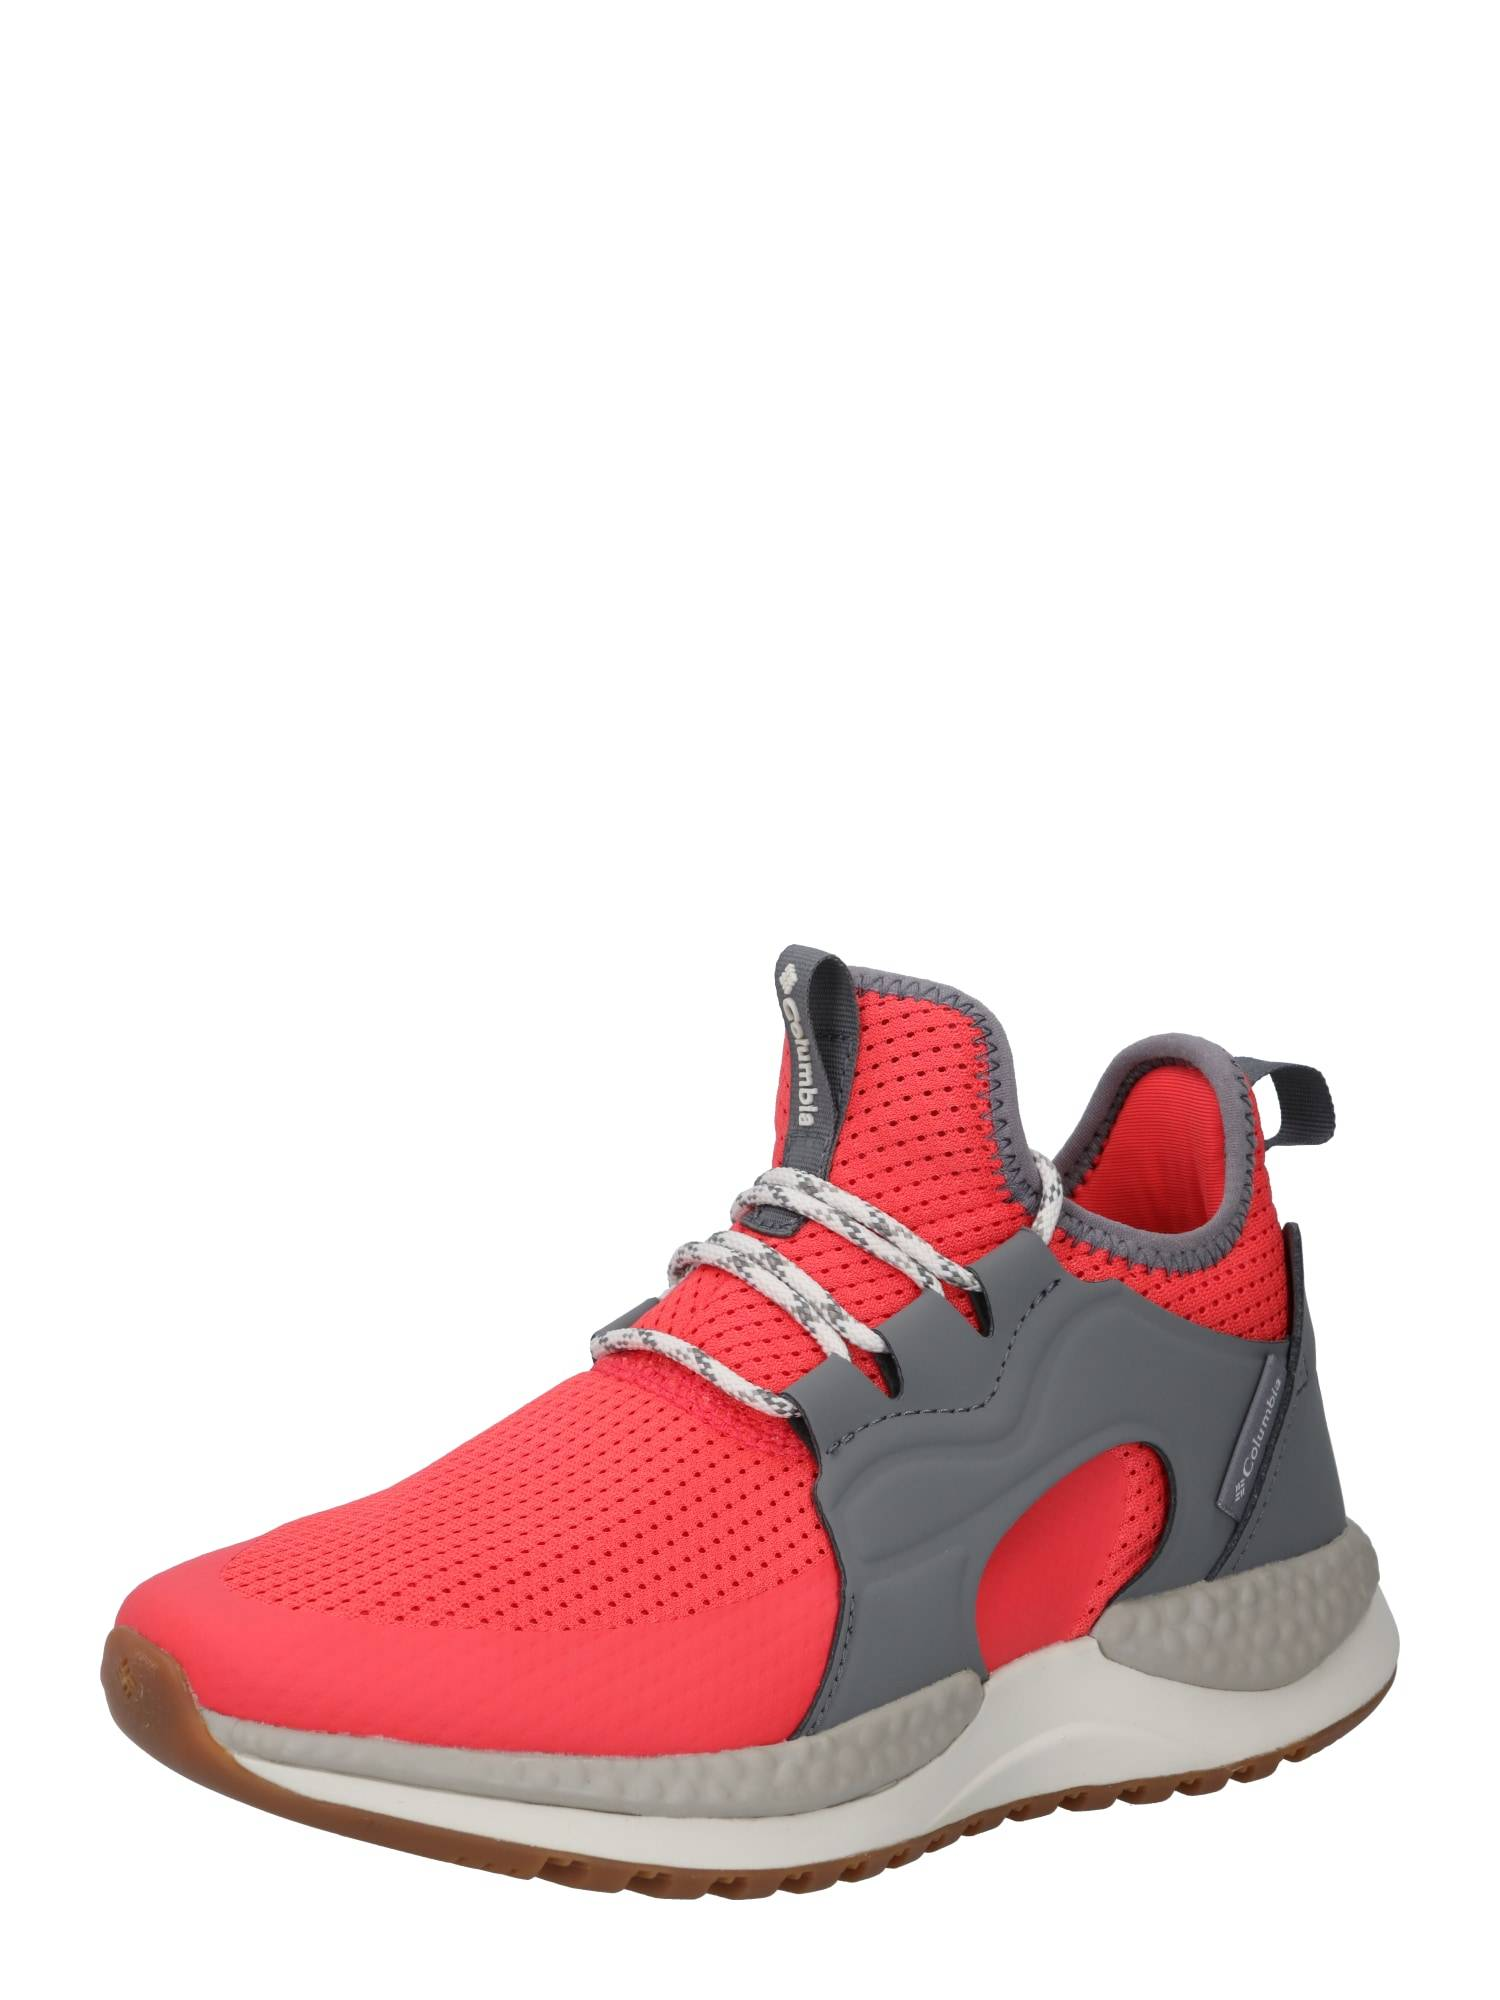 Columbia Baskets basses 'AURORA'  - Rouge - Taille: 7 - female